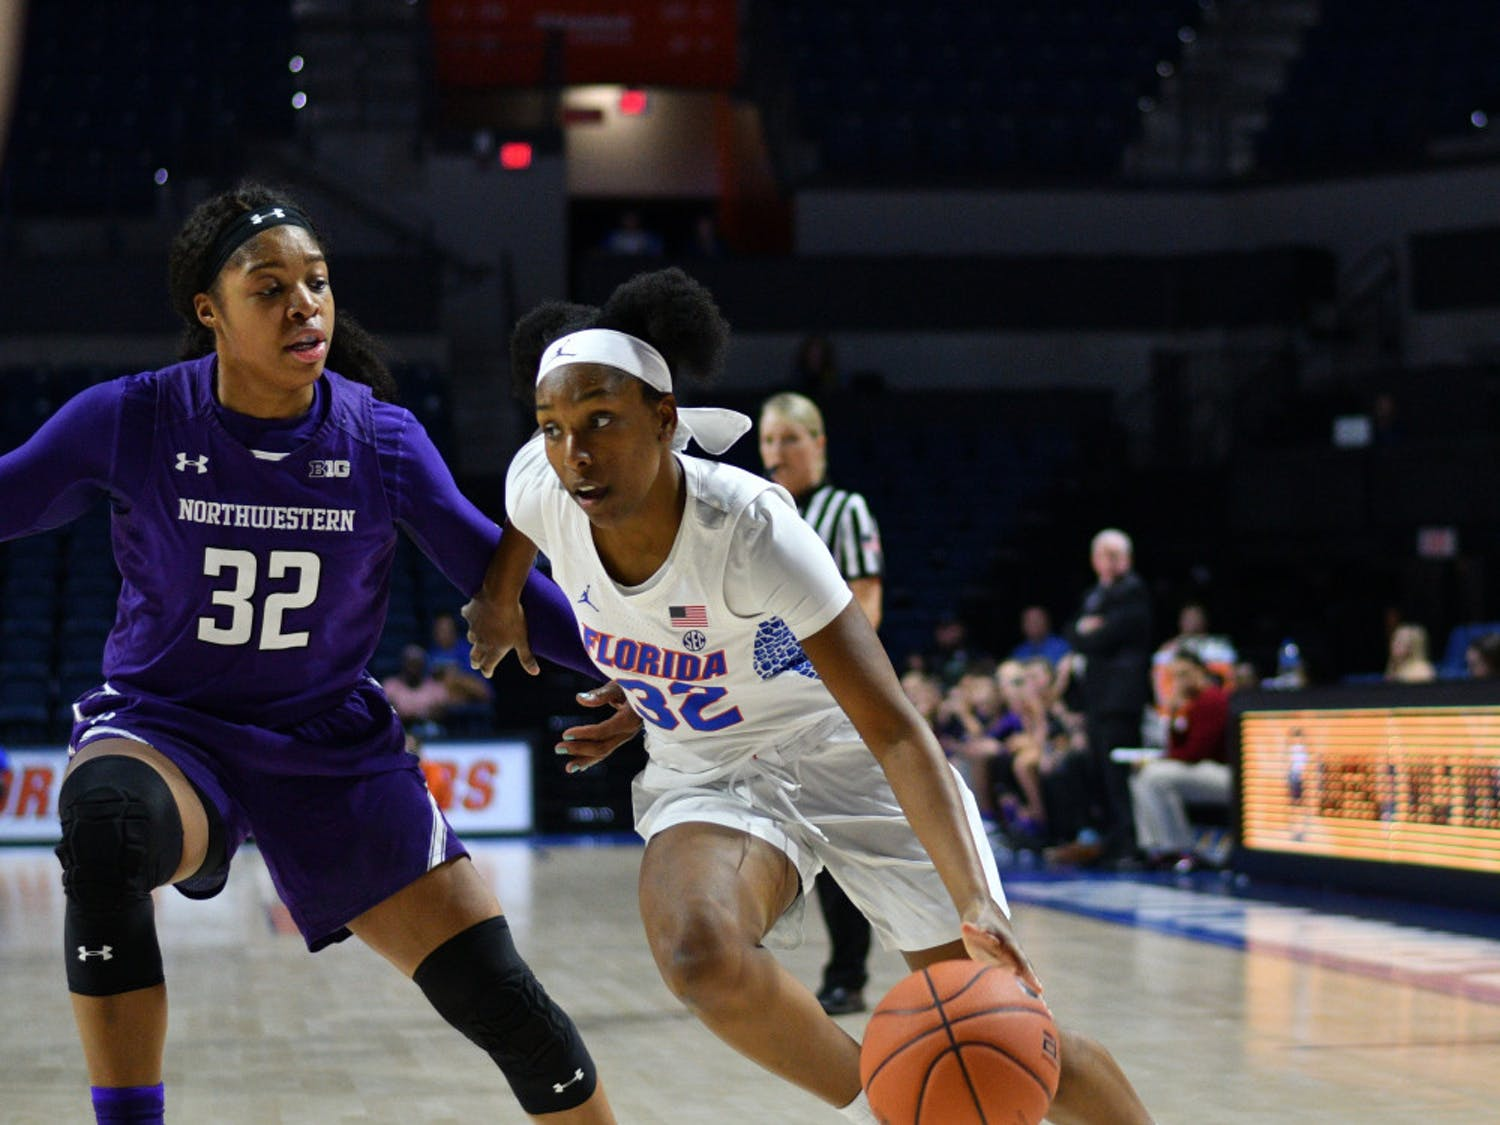 Florida guard Ariel Johnson is averaging 5.3 points per game and is second on the team with 22 three-pointers.